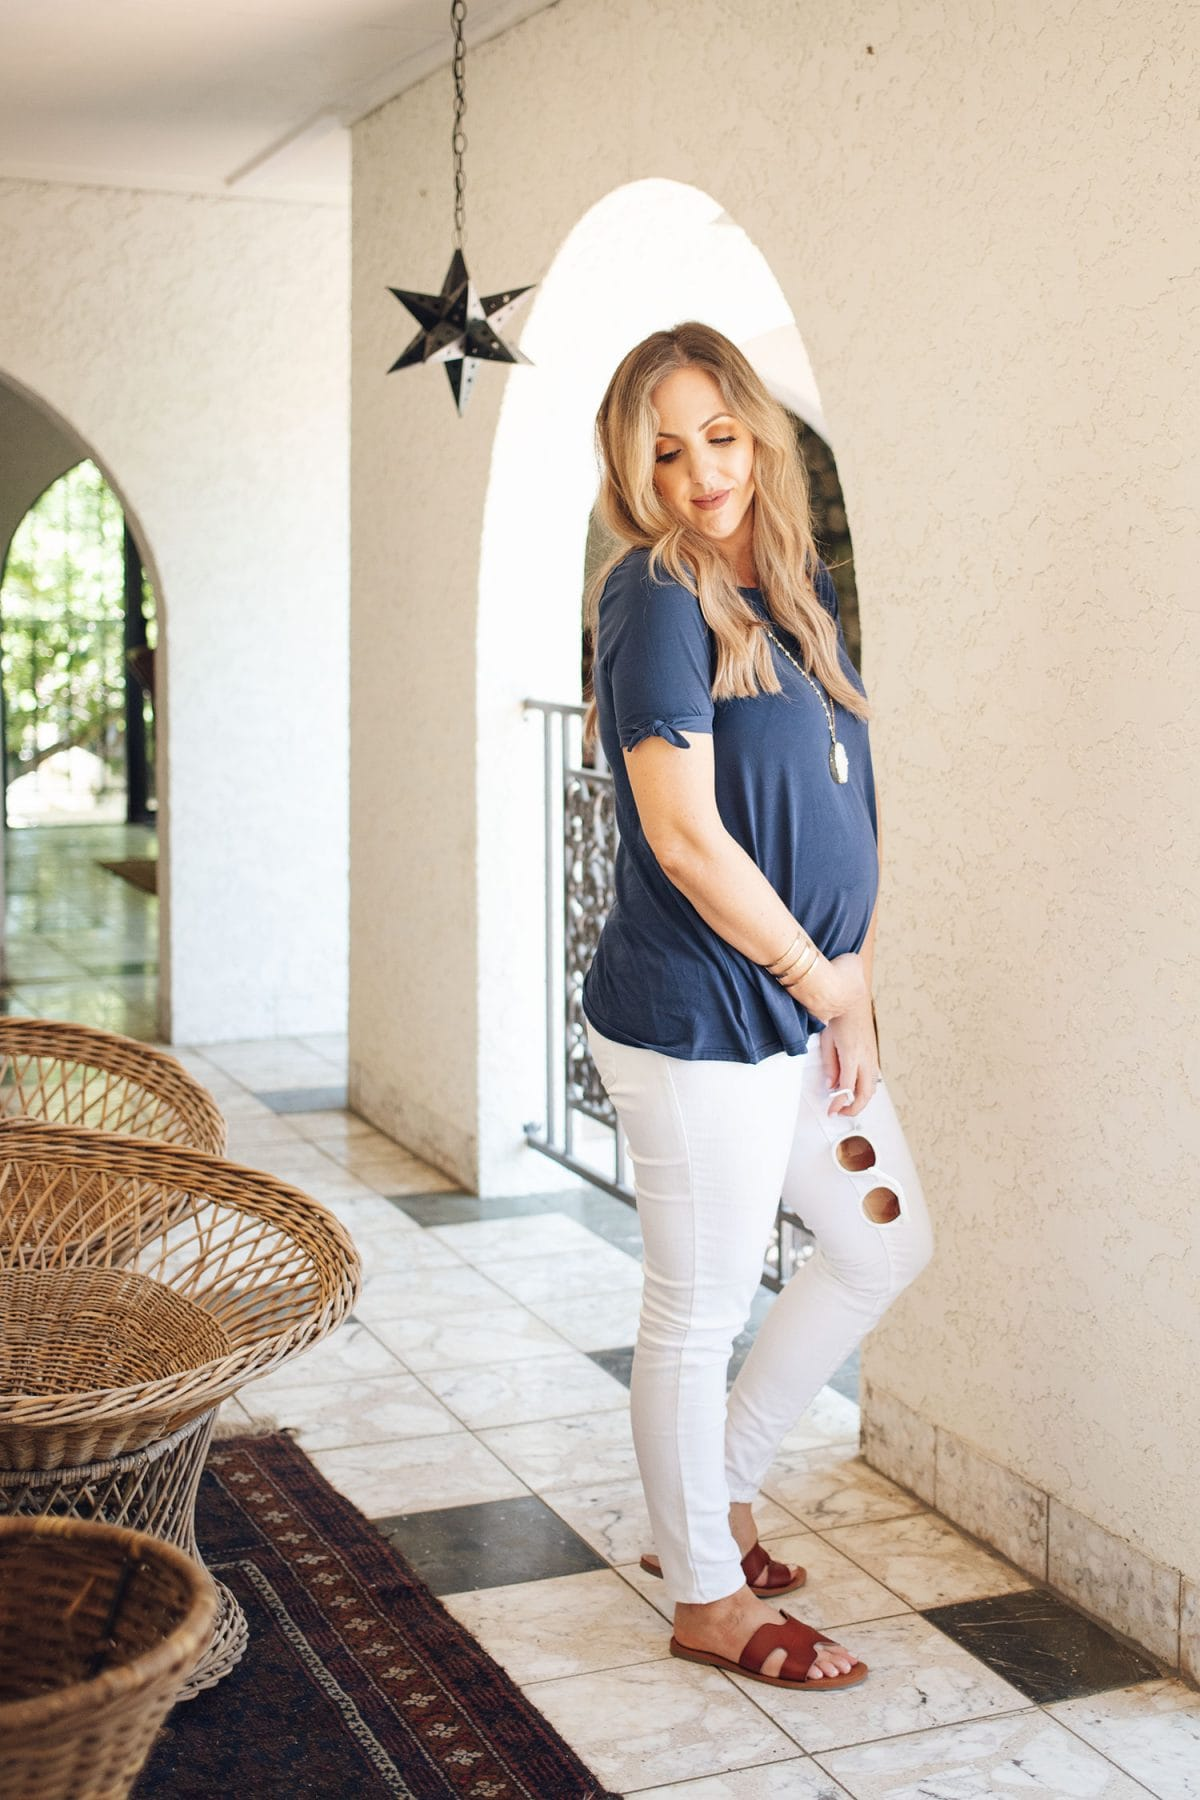 Houston mommy blogger Meg O. on the Go shares 3 maternity outfit ideas for spring and summer - love the navy top with white jeans